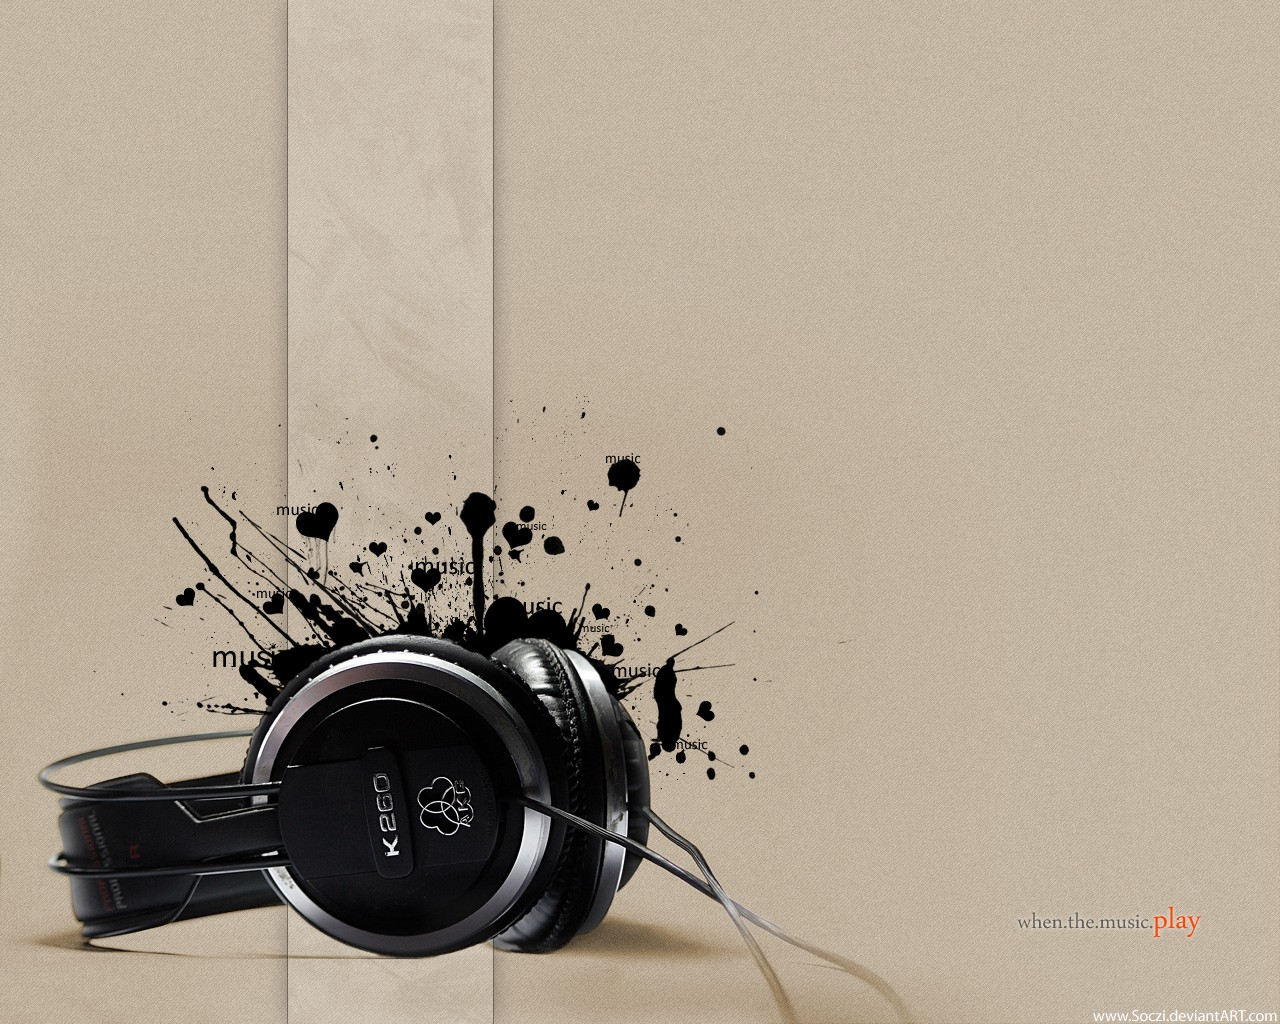 When The Music Play Wallpaper 1280x1024 px